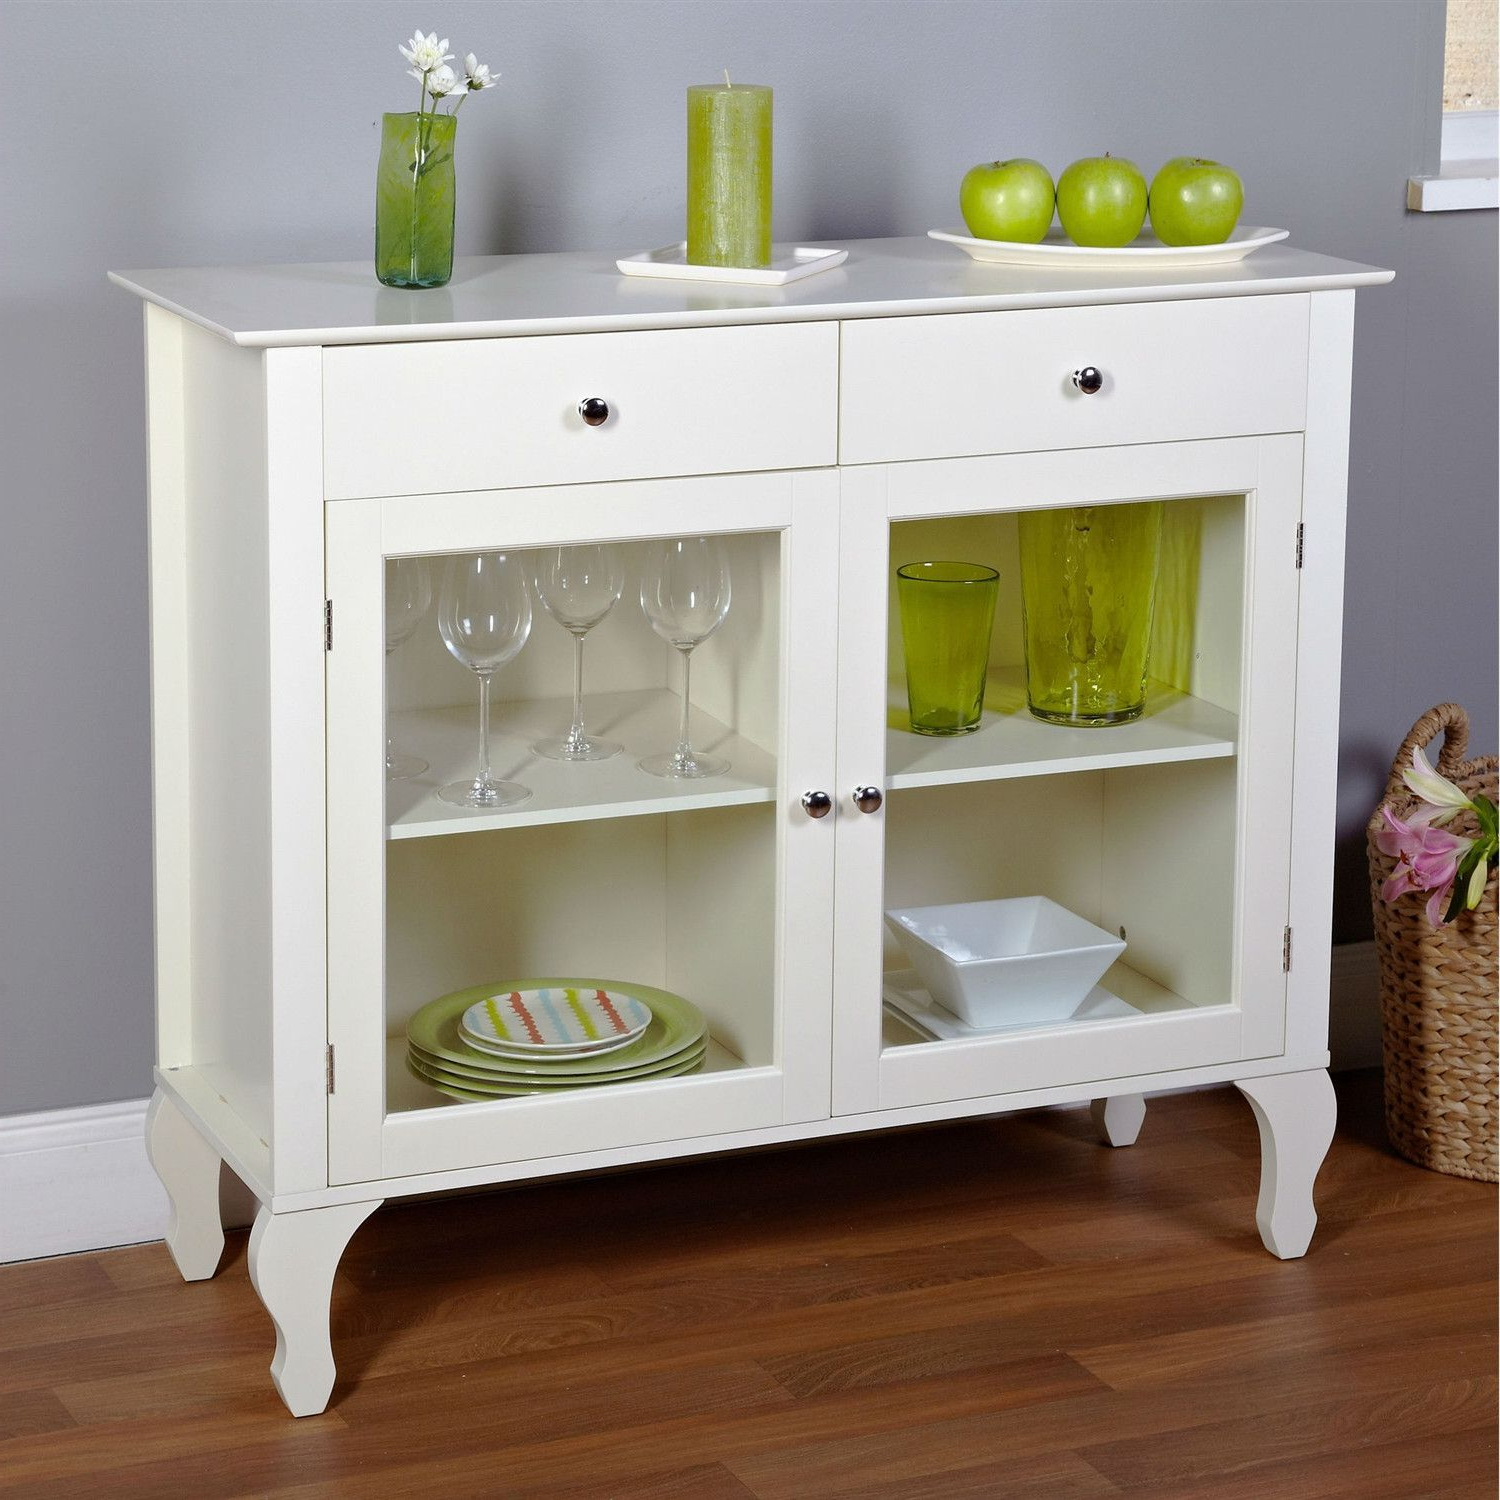 Antique White Sideboard Buffet Console Table With Glass With Regard To Simple Living Layla Black Buffets (View 2 of 20)